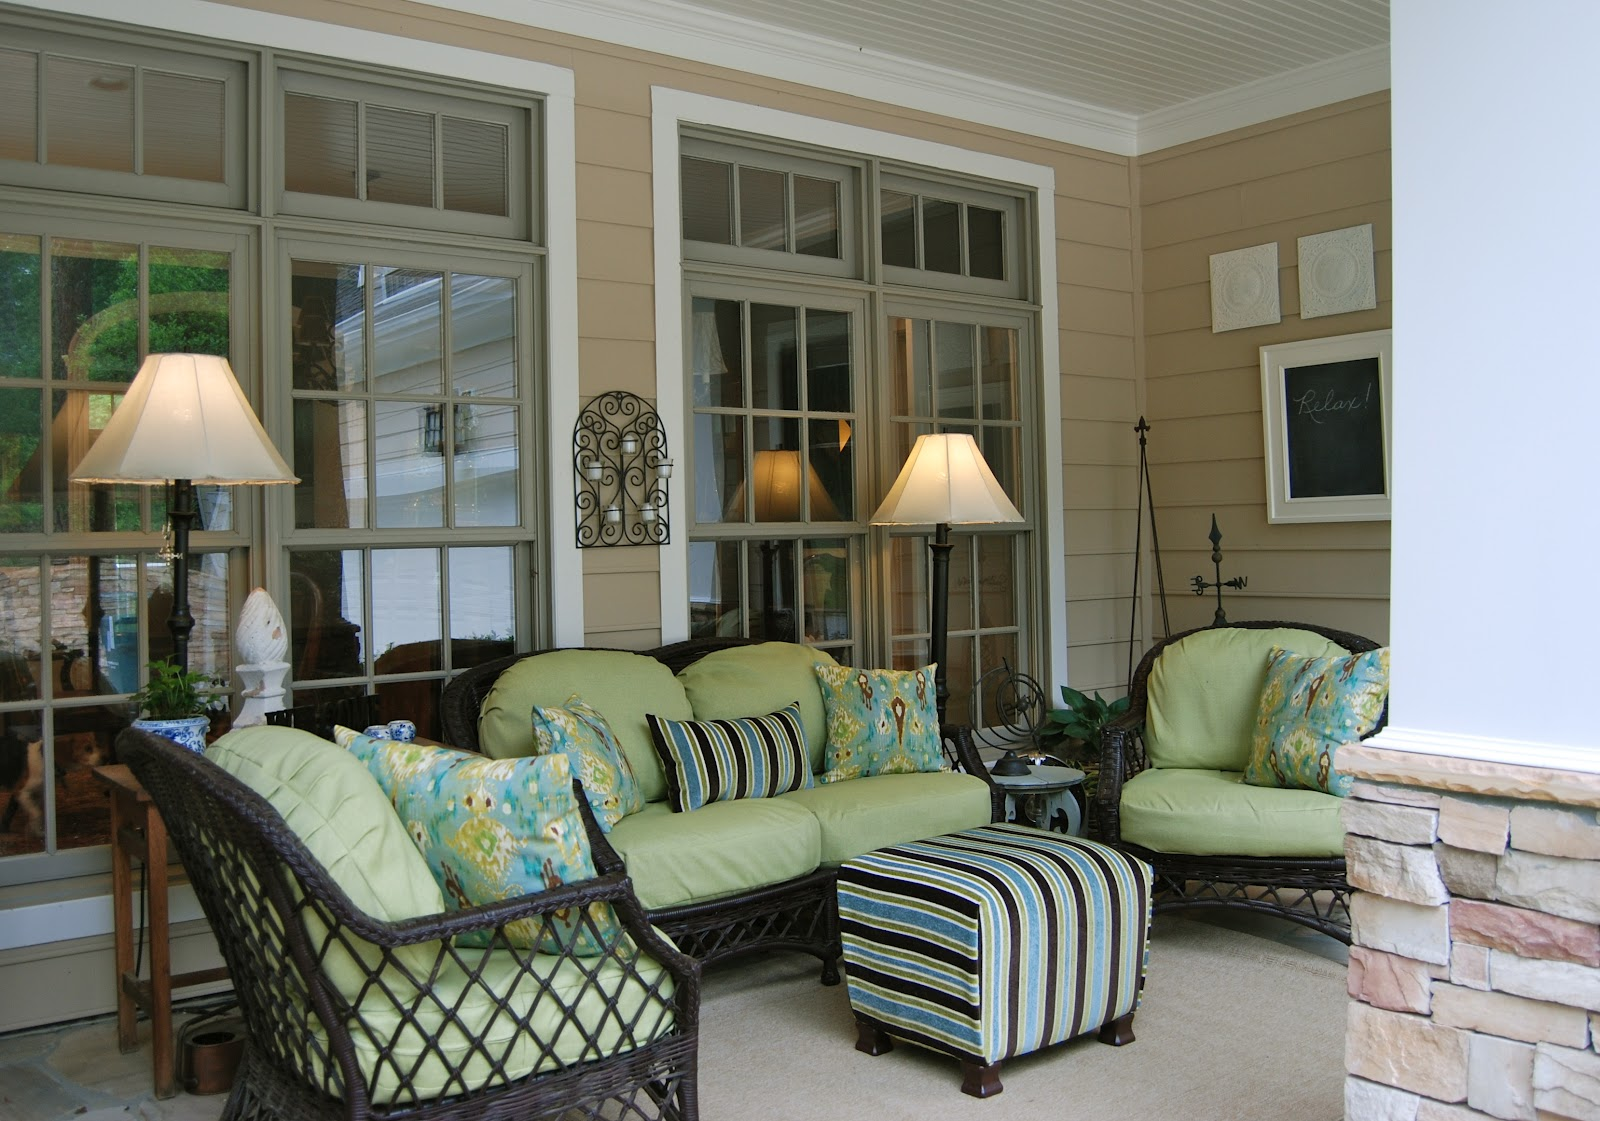 25 Inspiring Porch Design Ideas For Your Home on Patio Decor Ideas id=19815